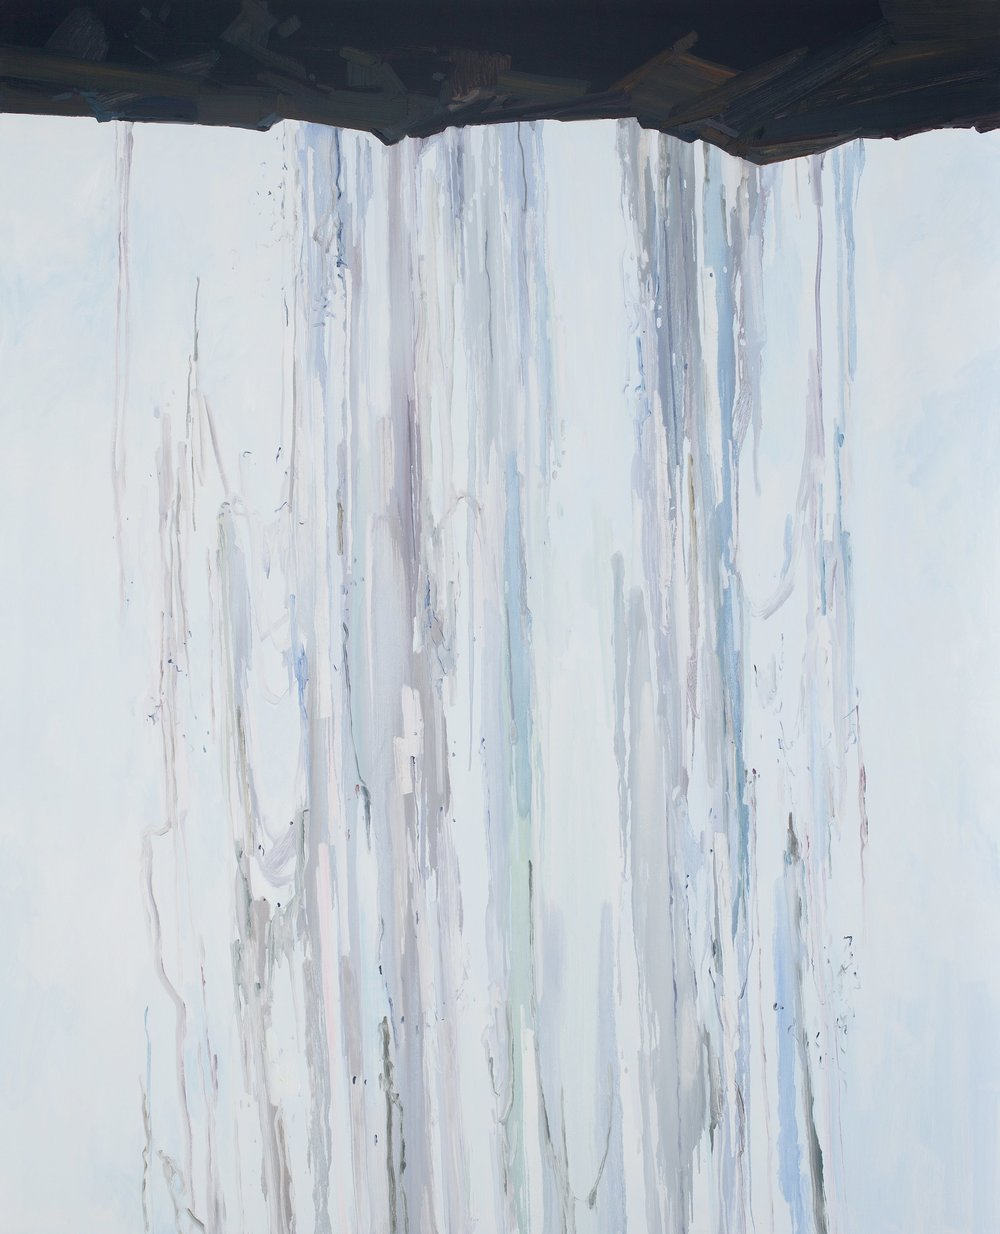 Waterfall , 2014, Oil on canvas, 96x78""